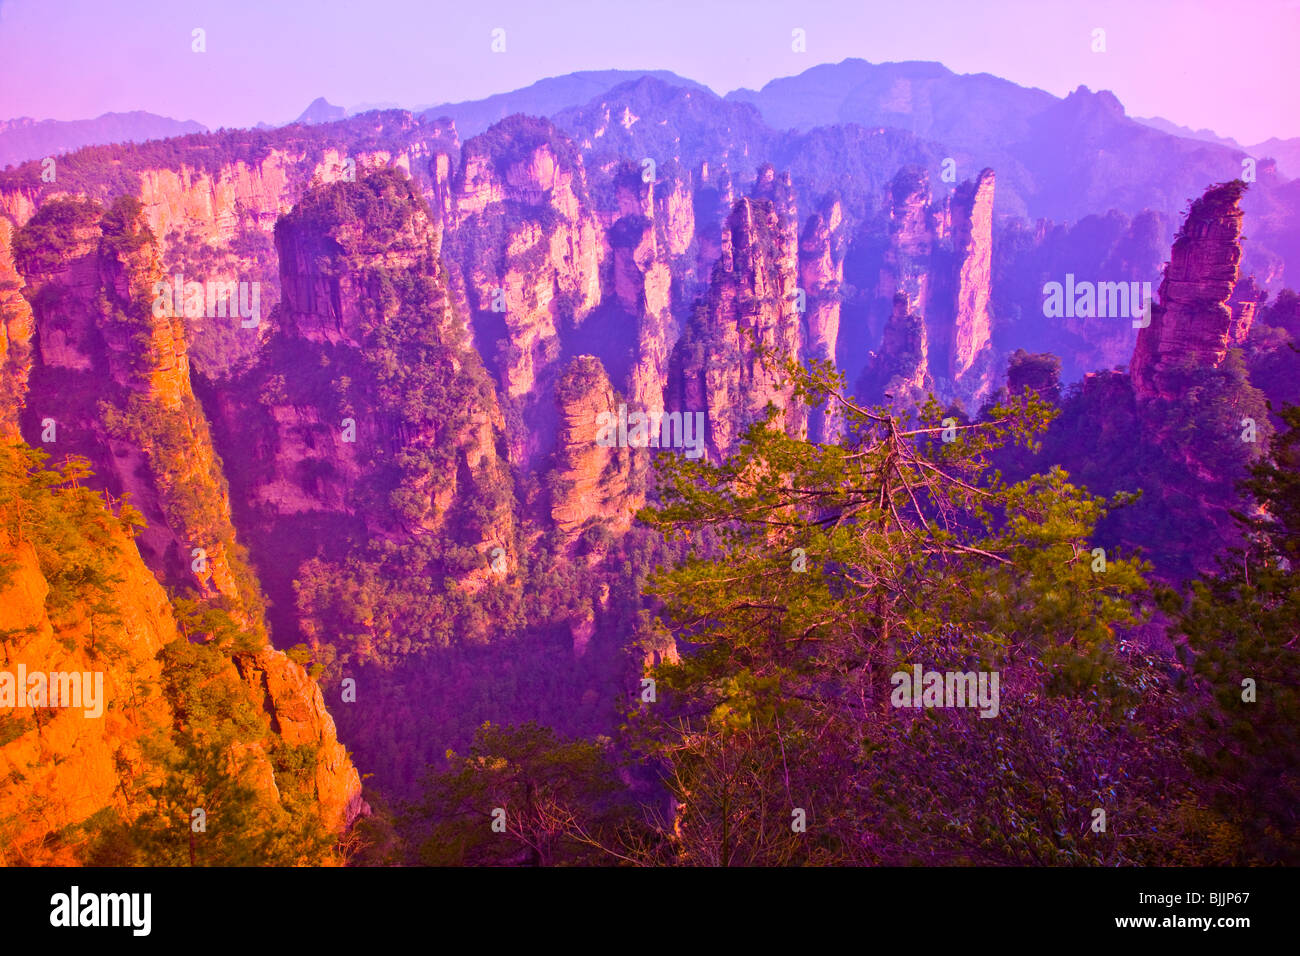 The Front Garden, rock pinnacles in Zhangjiajie National Forest Park, People's Republic of China, Wulingyuan - Stock Image